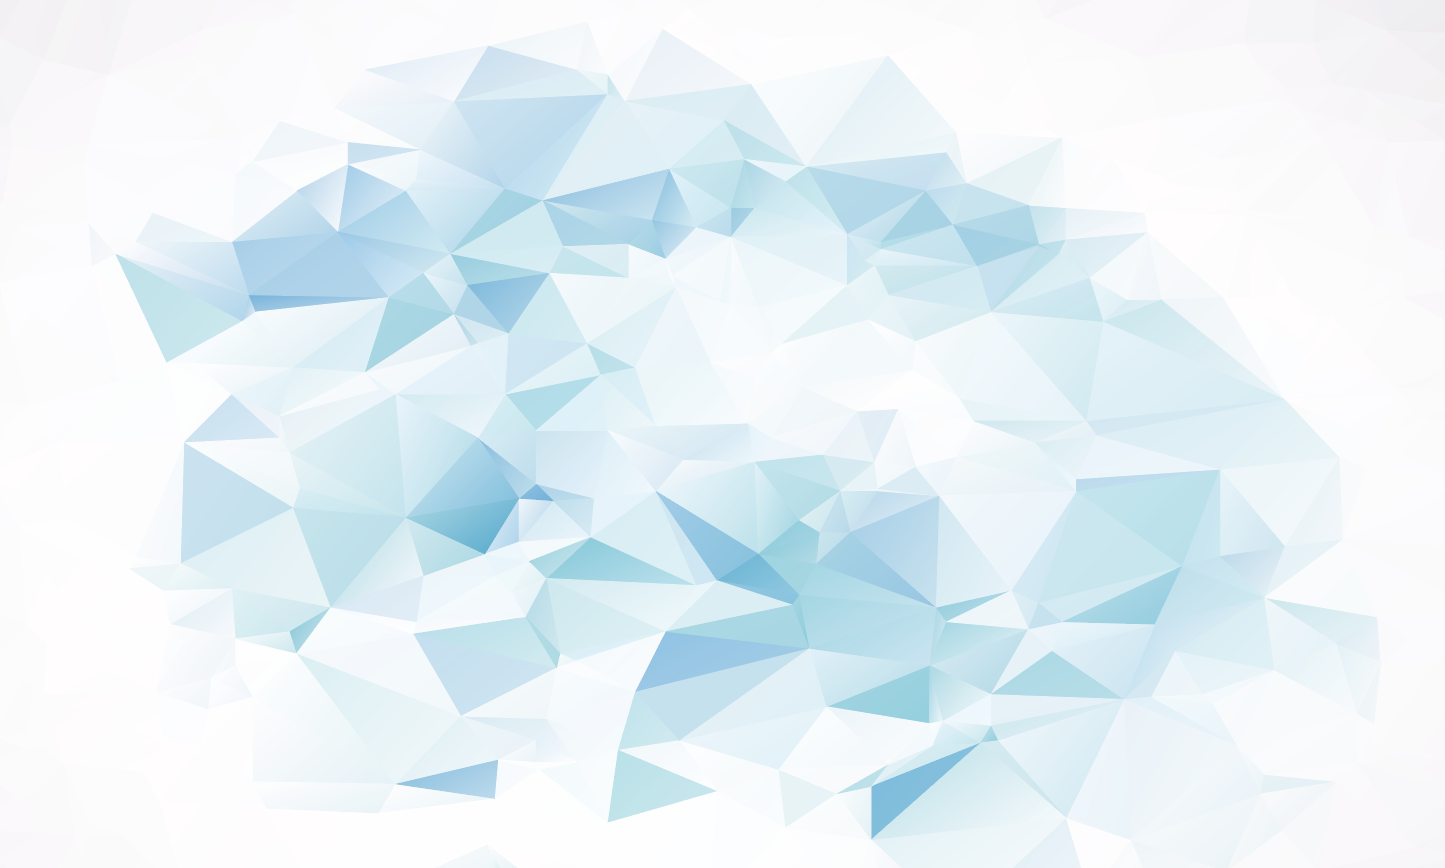 Abstract triangles in different shades of light blue